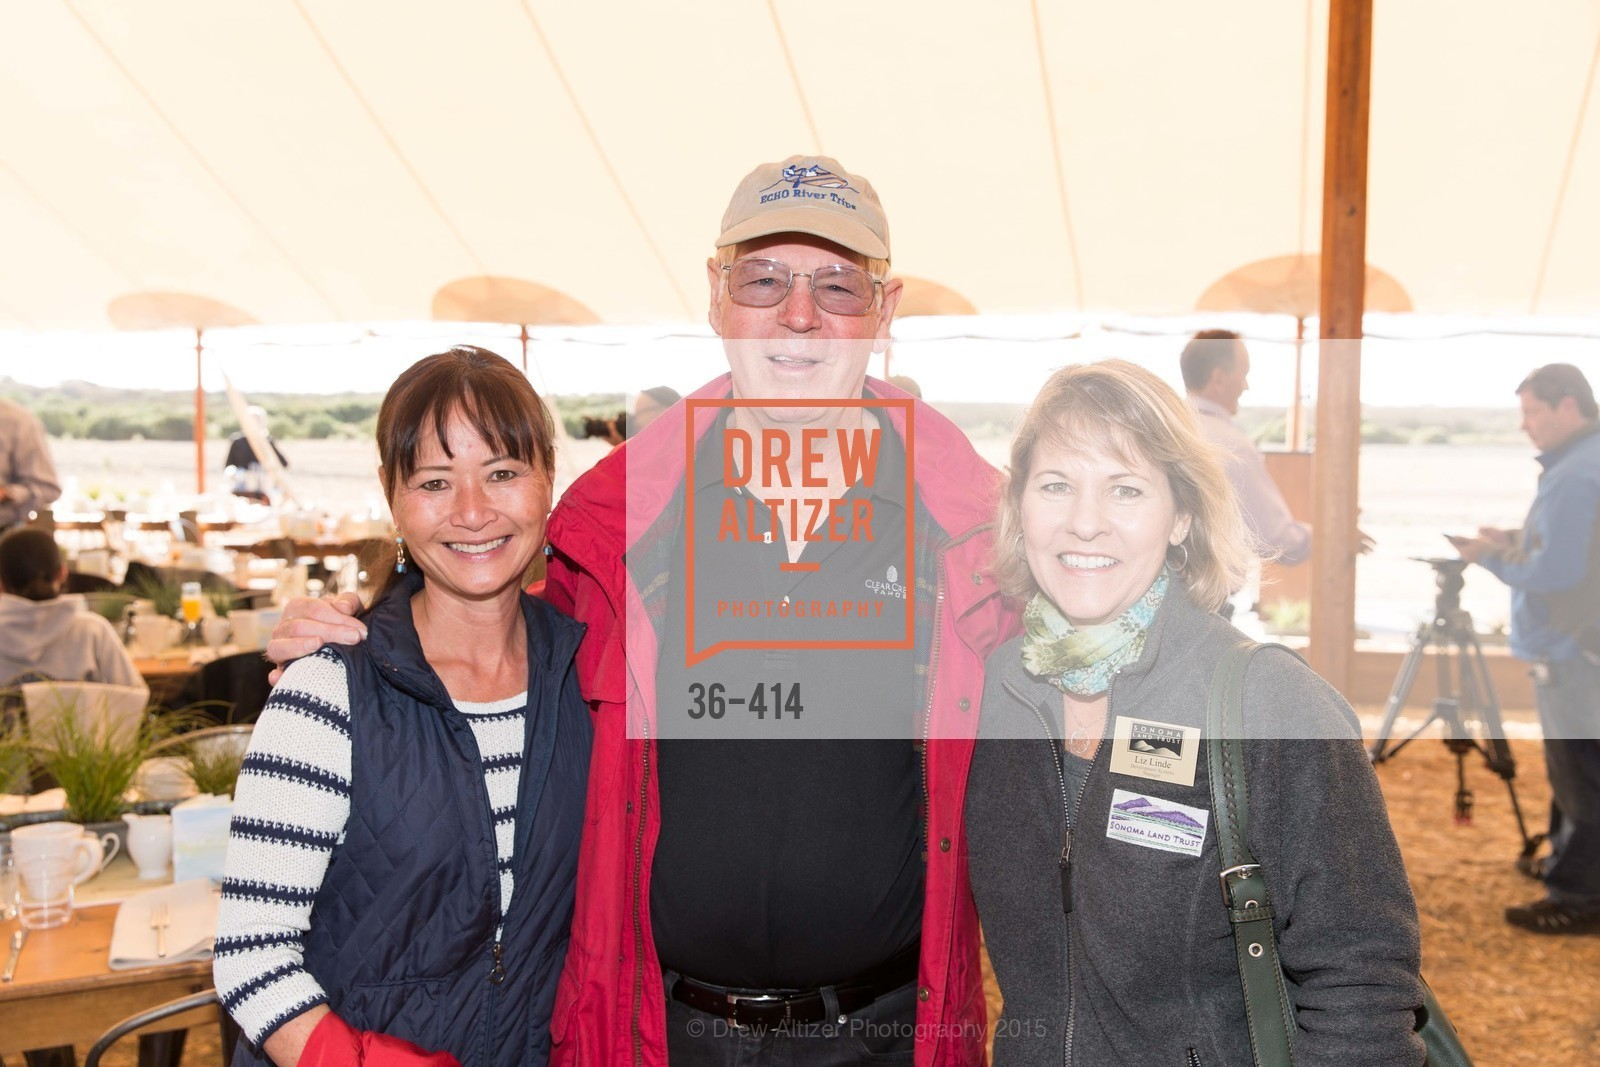 Christine Tran, Warren Lyons, Liz Linde, SEA CHANGE at Sears Point with Sonoma Land Trust, Sears Point. Hwy 37 and Lakeville Hwy, October 25th, 2015,Drew Altizer, Drew Altizer Photography, full-service agency, private events, San Francisco photographer, photographer california